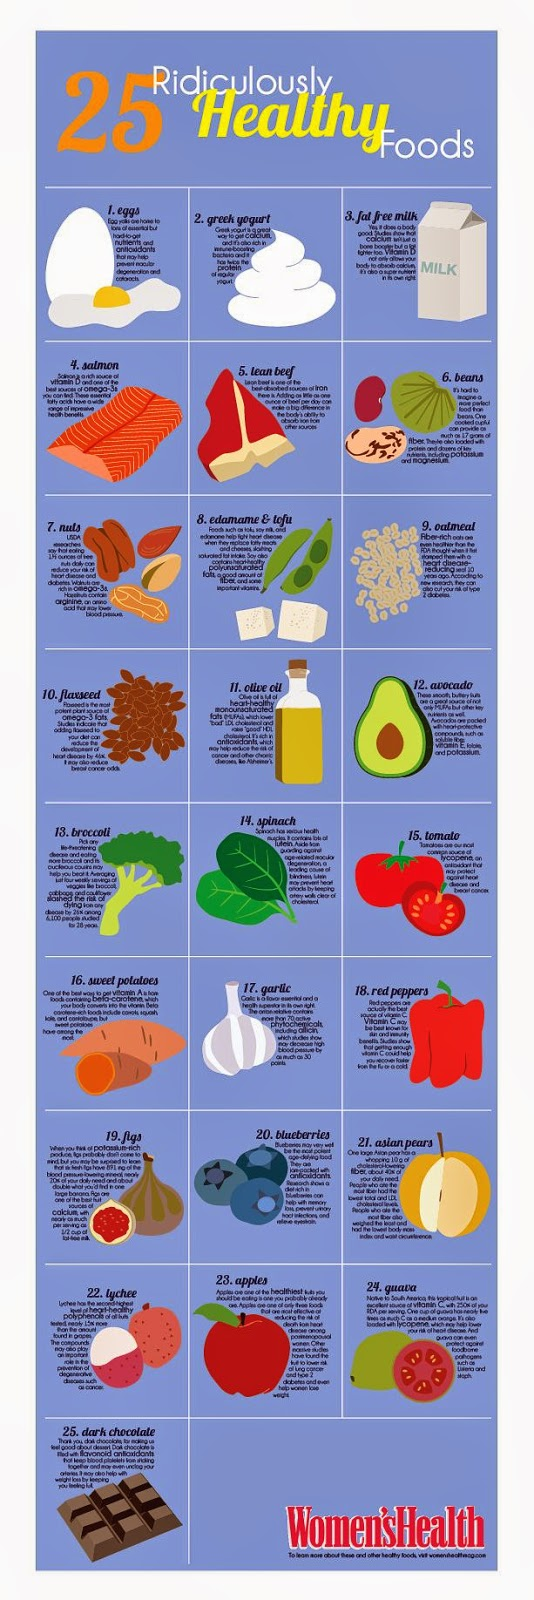 hover_share weight loss - 25 ridiculously healthy foods